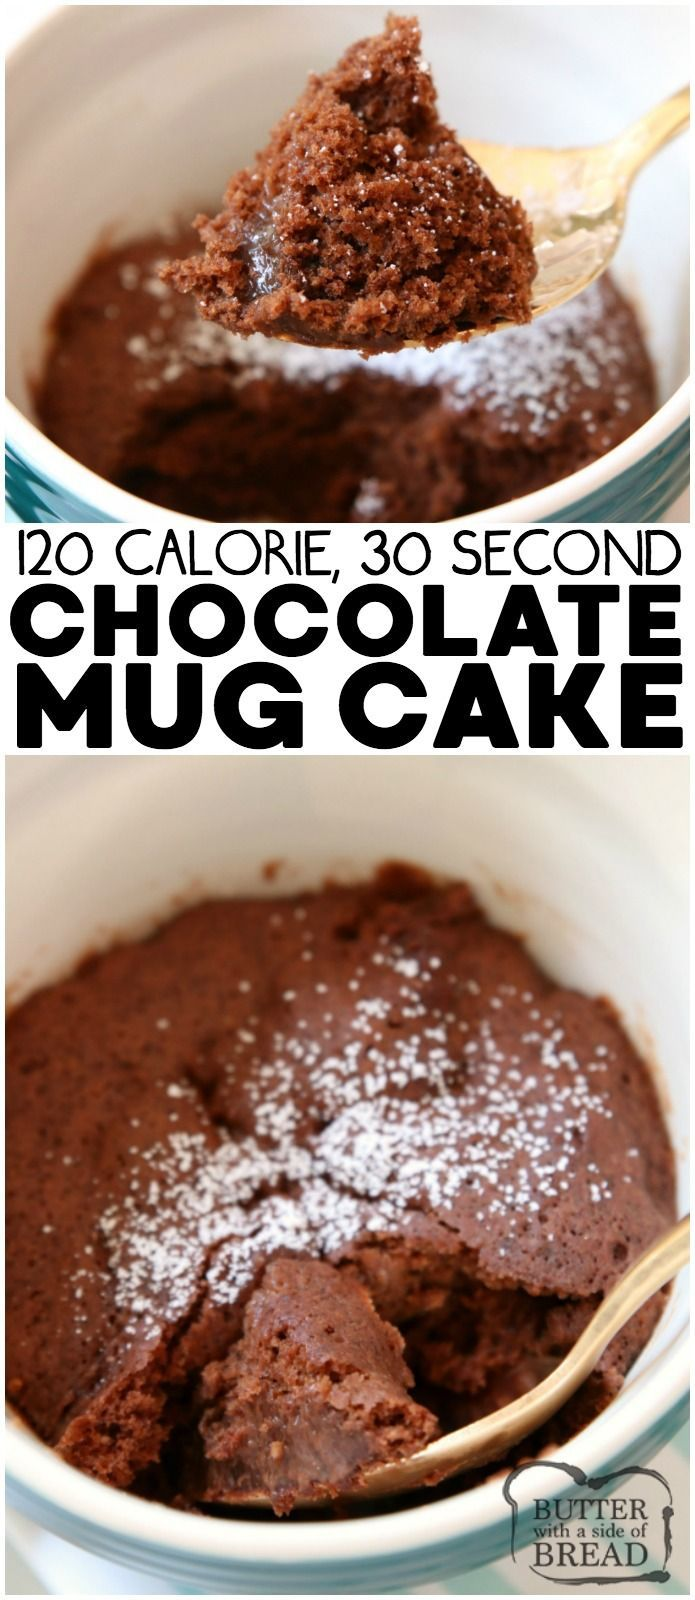 Calorie Chocolate Mug Cake Recipe made with common ingredients in 30 seconds! Soft, sweet & fudgy low-cal chocolate mug cake perfect for cravings.  from BUTTER WITH A SIDE OF BREAD